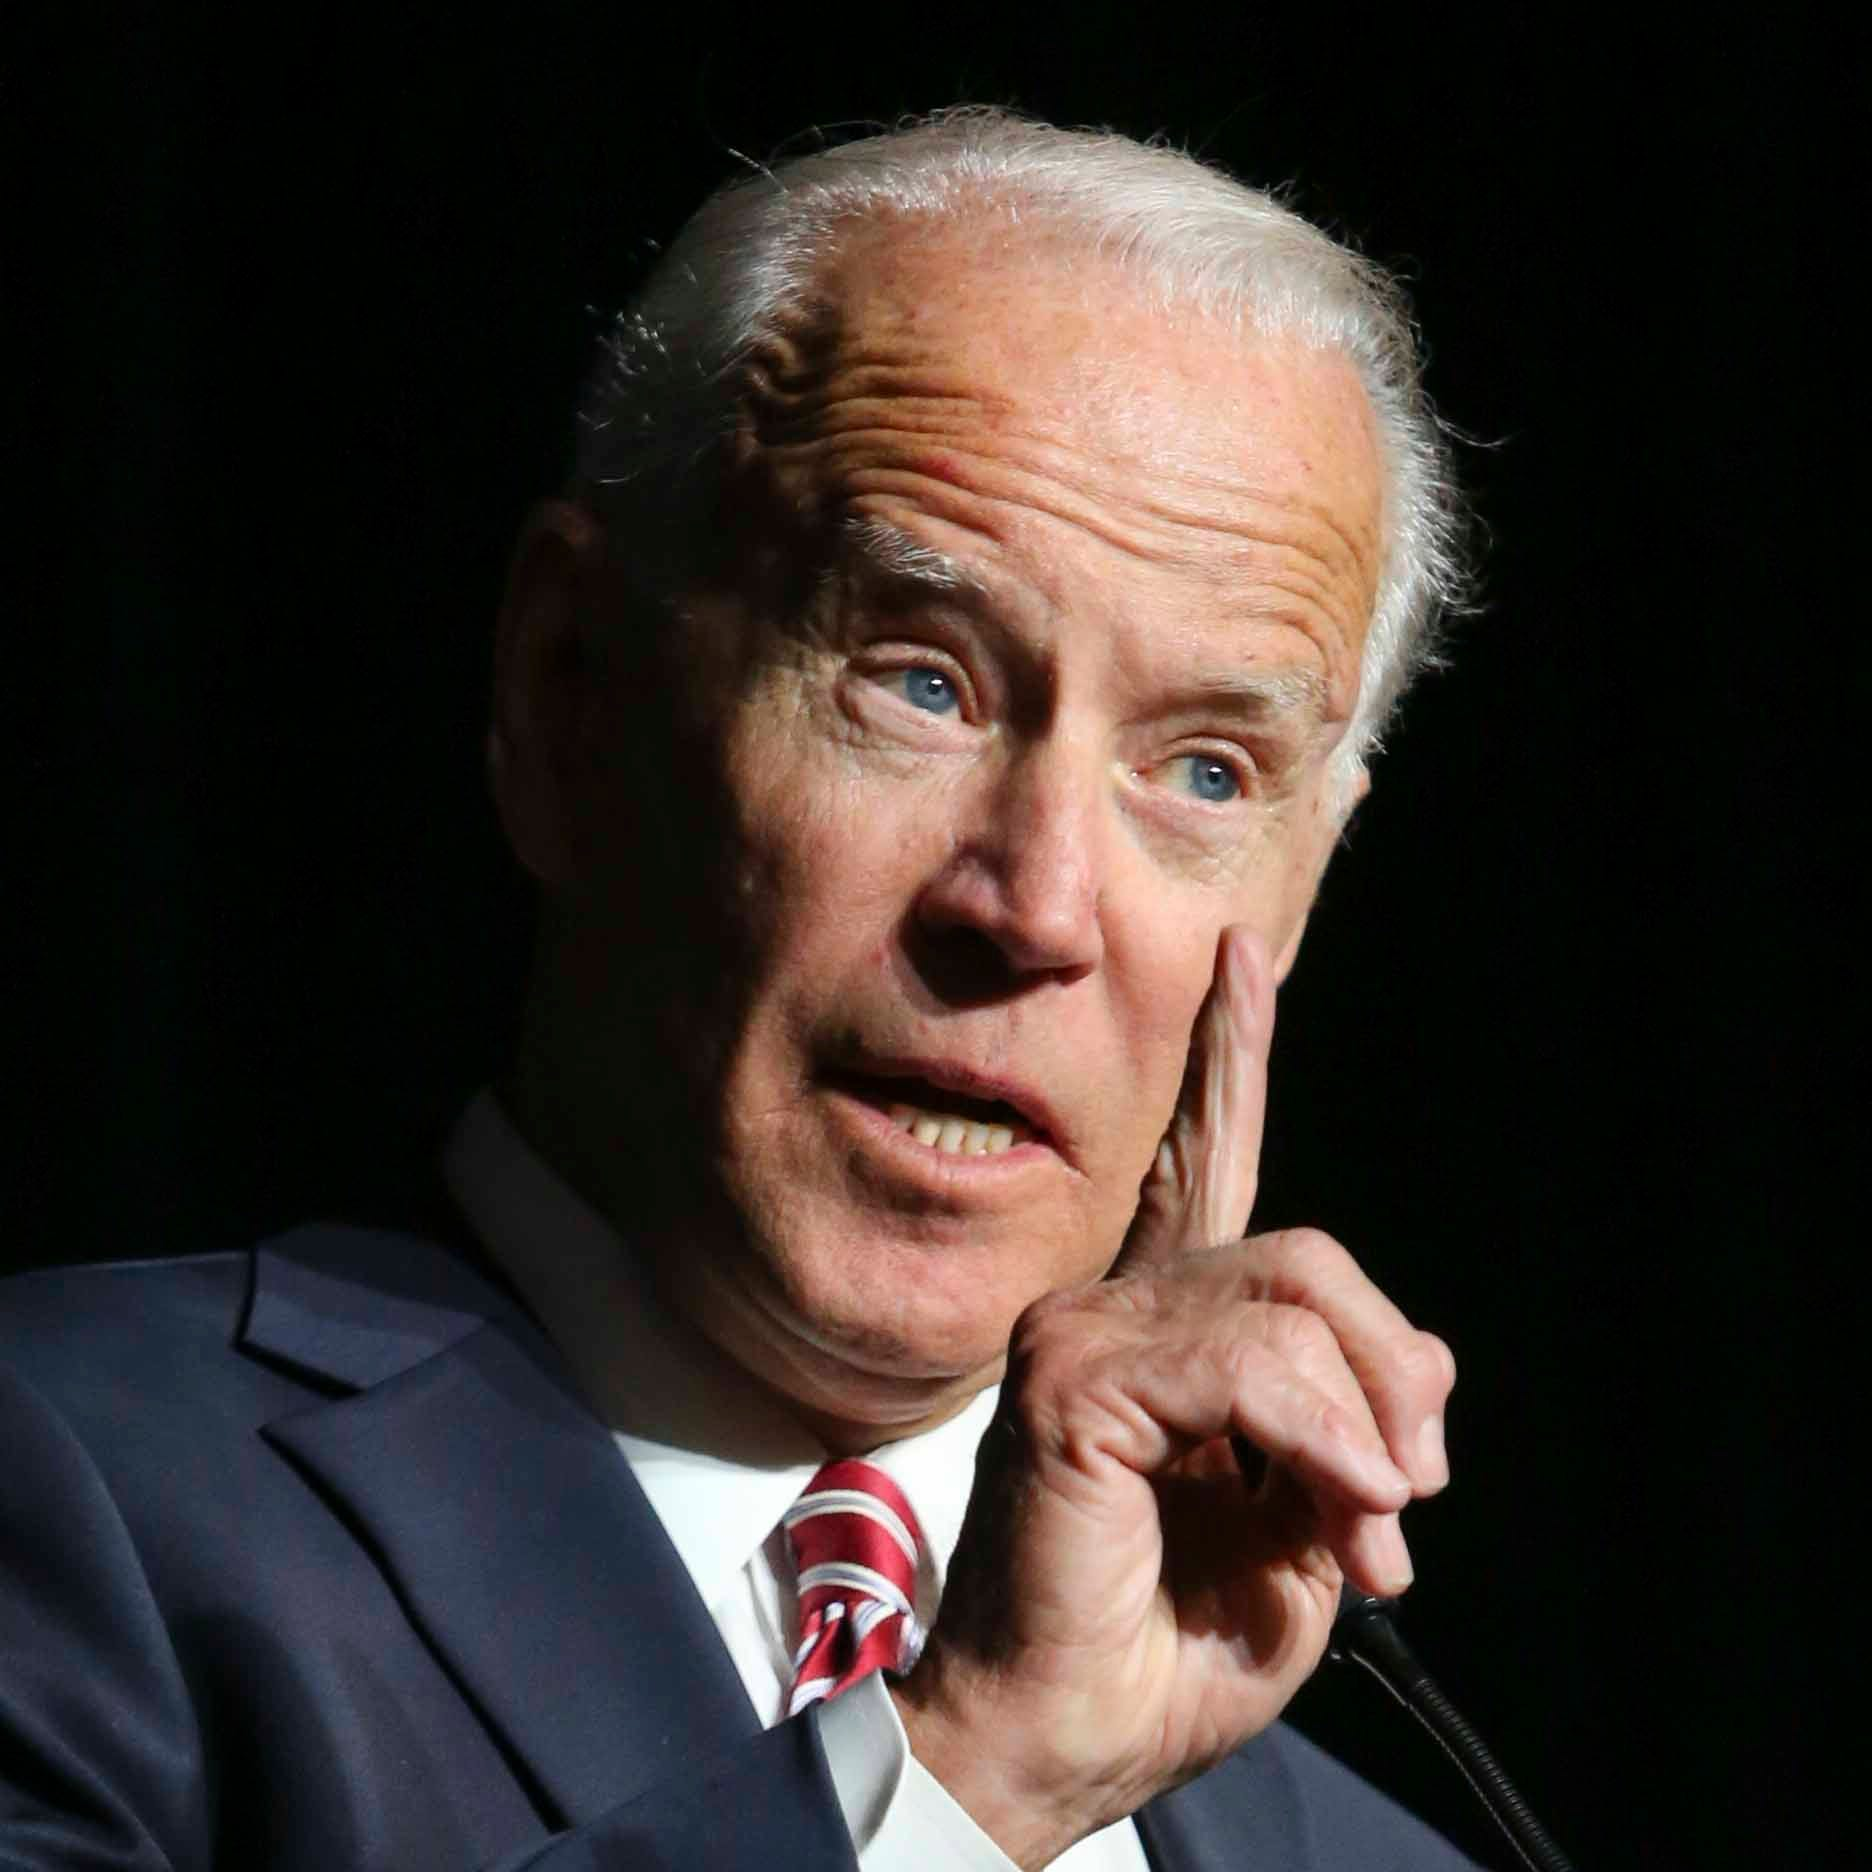 Joe Biden headlines Delaware Democratic Party fundraiser